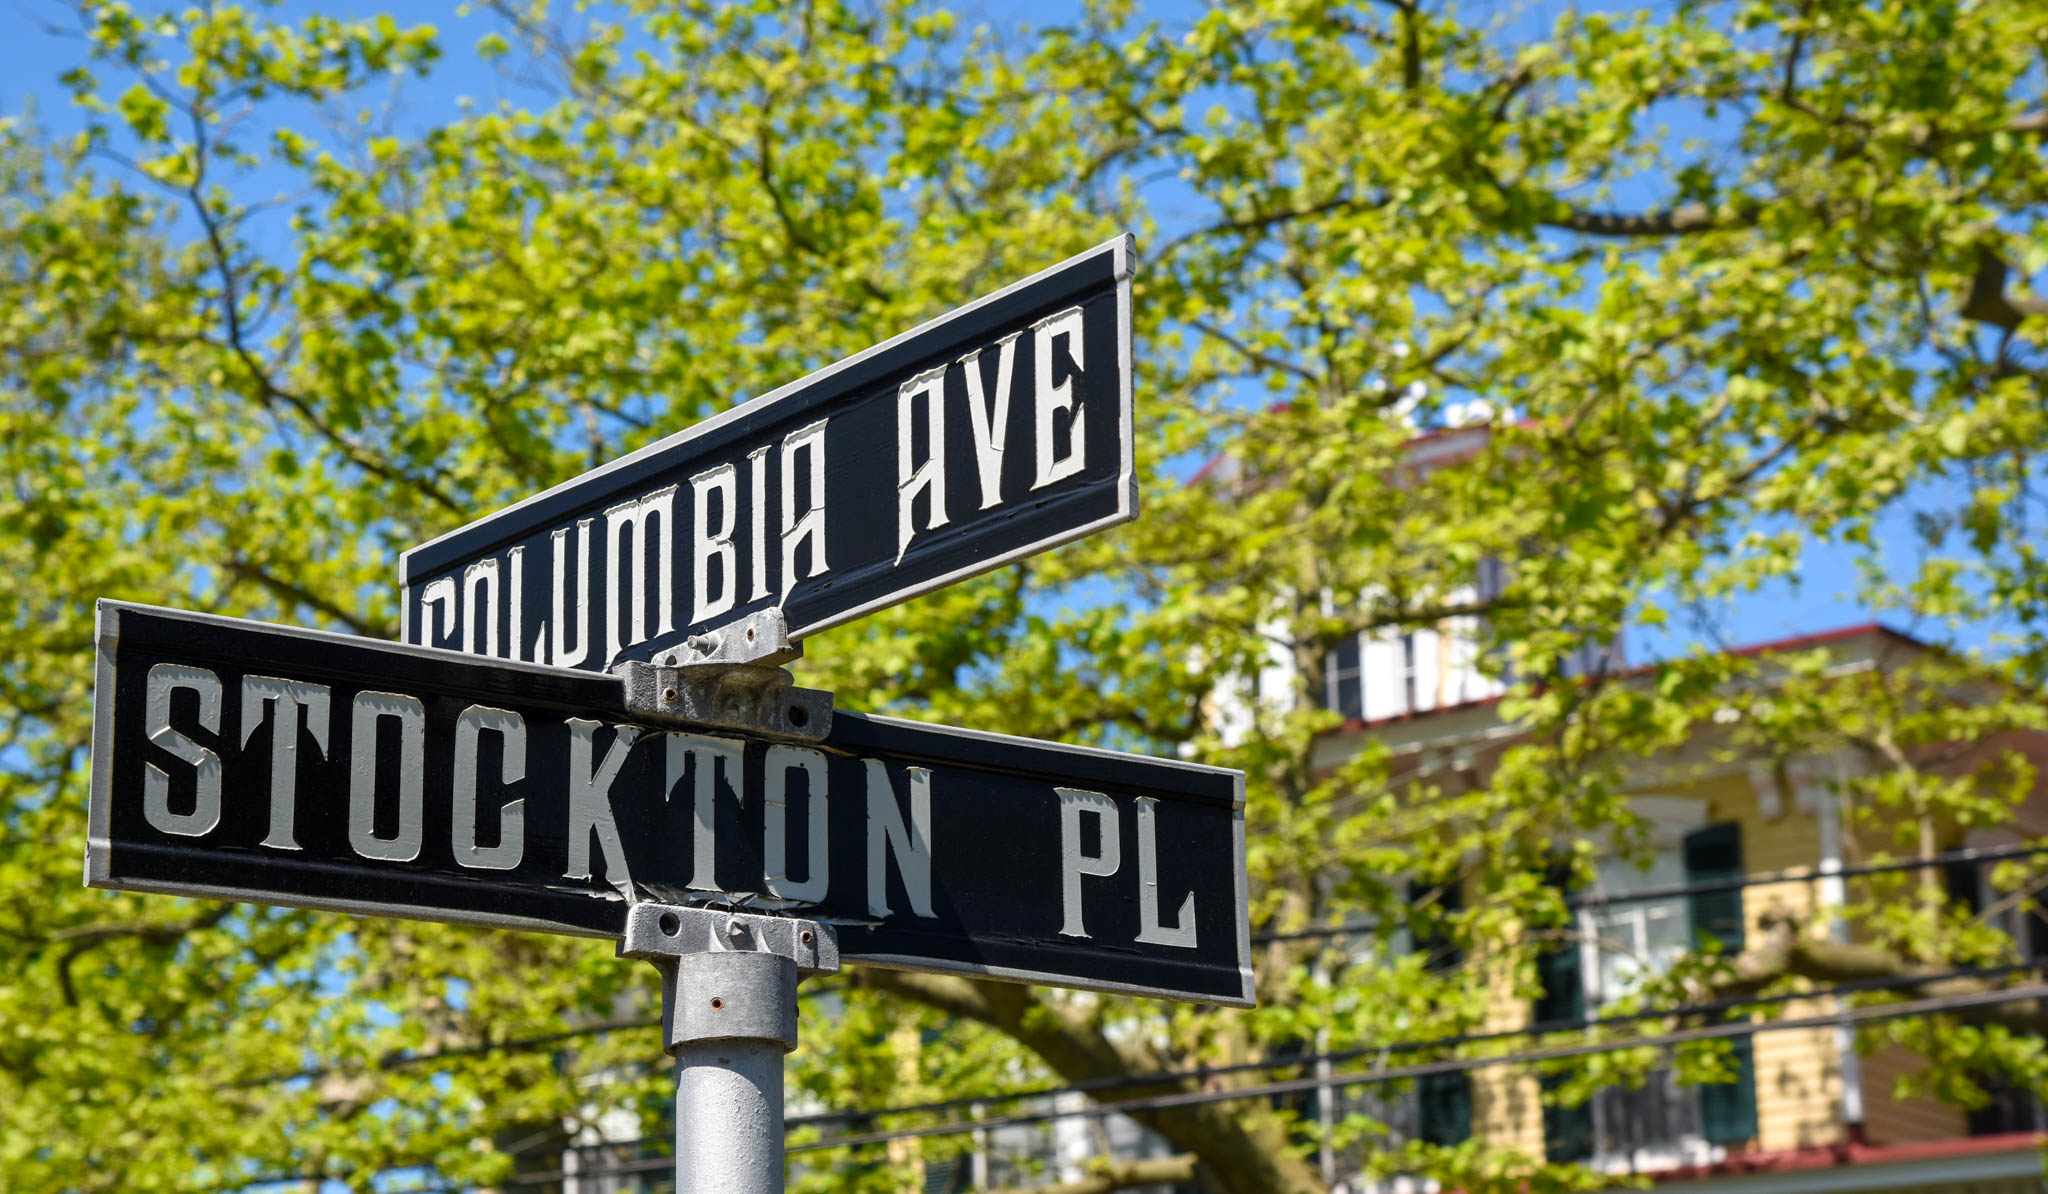 Stockton on the corner of Place & Columbia Avenue looking at the street signs